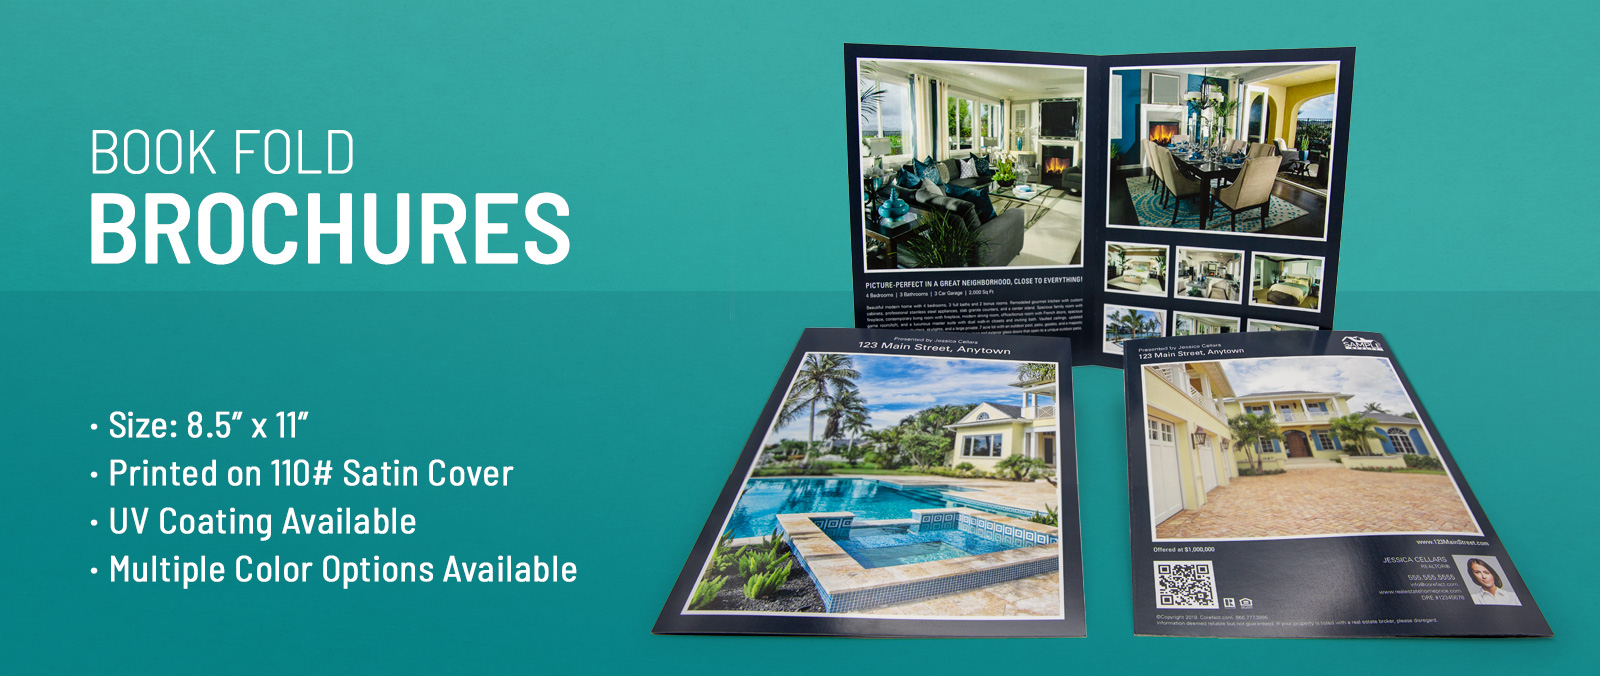 Luxury Property Book Fold Brochures